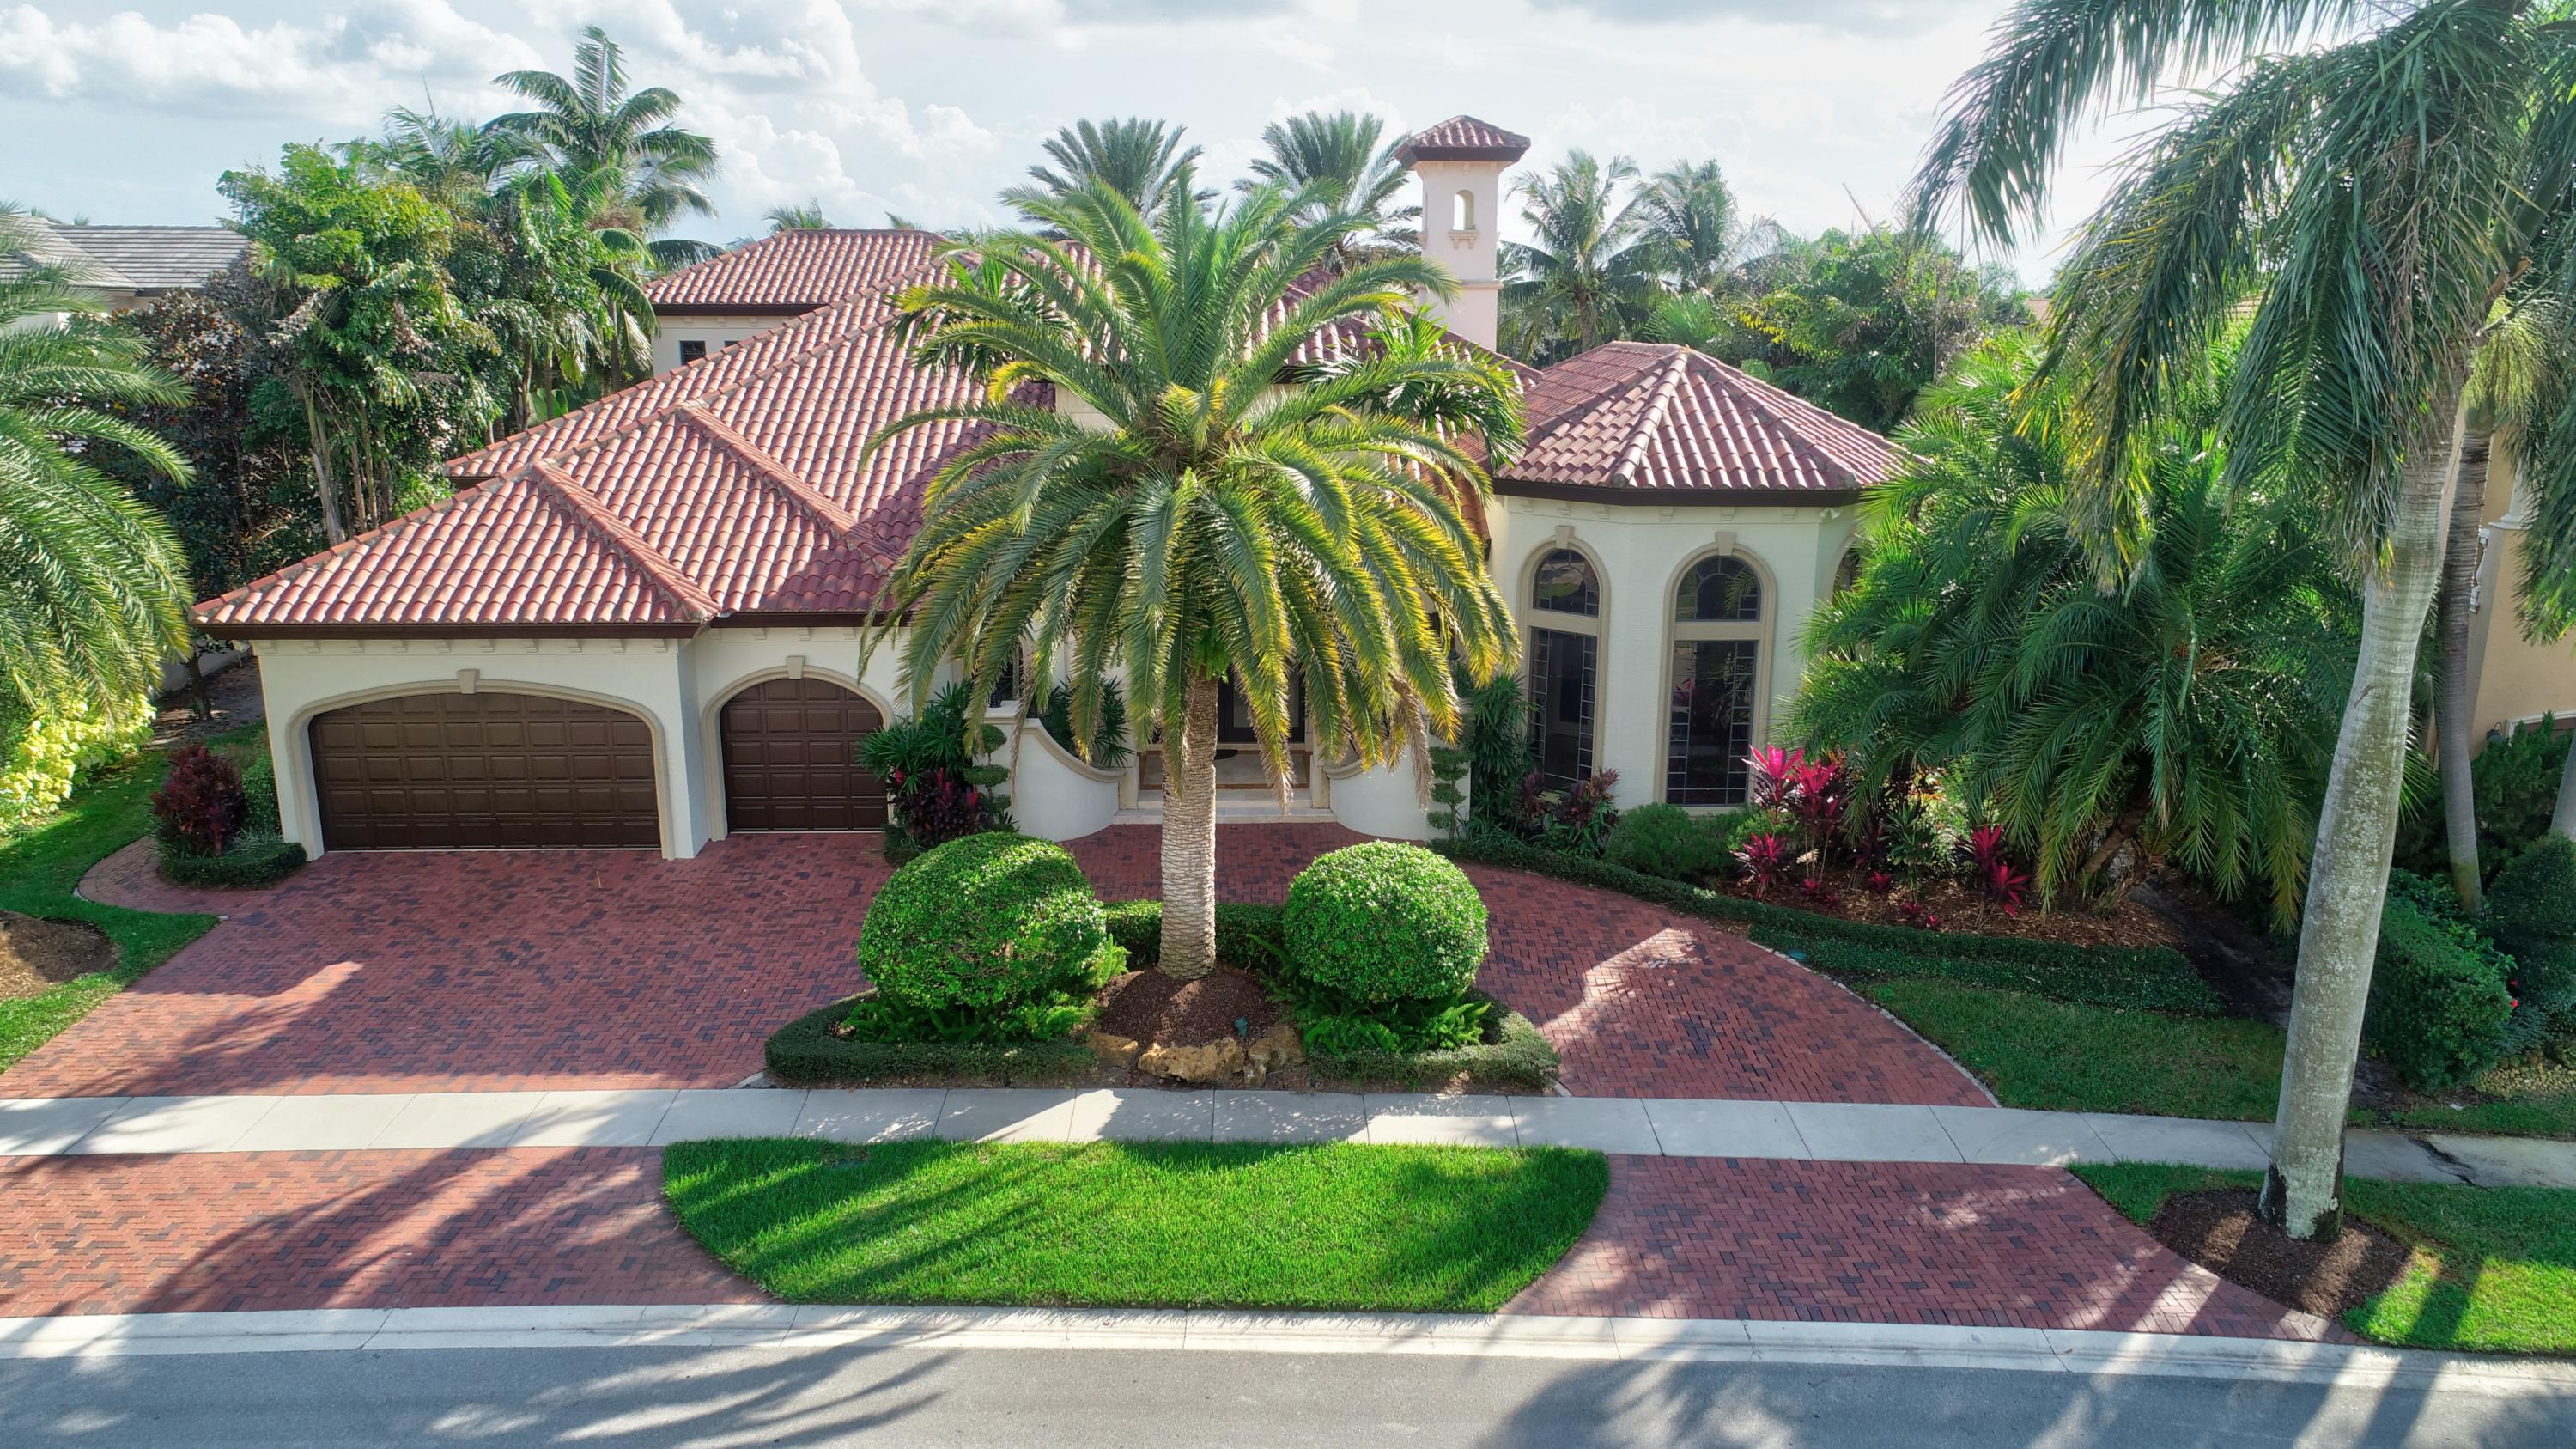 A masterpiece of classic Palm Beach design, this home is located in the exclusive enclave of DEL PRADO in MIZNER COUNTRY CLUB. Situated on a premier lot, this residence enjoys both serene golf and lake views. Resplendent in Old World details with 7700 total square feet, this spectacular home affords distinctive living and entertaining in unrivaled elegance and luxury. Extensive design elements include carved wood and stone columns, Venetian plastered walls, and custom stained glass accents. Lavish entertaining areas include a Grand Salon with fireplace and carved Mahogany bar, an elegant Dining Room with coffered ceiling, and a Billiard Room/Library with built-ins. The Family Room offers a beautiful custom built..... A masterpiece of classic Palm Beach design, this home is located in the exclusive enclave of DEL PRADO in MIZNER COUNTRY CLUB. Situated on a premier lot, this residence enjoys both serene golf and lake views. Resplendent in Old World details with 7700 total square feet, this spectacular home affords distinctive living and entertaining in unrivaled elegance and luxury. Extensive design elements include carved wood and stone columns, Venetian plastered walls, and custom stained glass accents. Lavish entertaining areas include a Grand Salon with fireplace and carved Mahogany bar, an elegant Dining Room with coffered ceiling, and a Billiard Room/Library with built-ins. The Family Room offers a beautiful custom built Media/Entertainment center. An expertly designed Kitchen features the finest in appliances, and offers a large pantry. A luxurious first floor Master Suite offers golf course views, and is grand in size with a sitting room and 2 custom closets. A sumptuous Master Bath is a special retreat with an ultra large Jacuzzi tub and two separate showers & commode spaces. Four additional en-suite Bedrooms are well appointed. Outdoors, an enchanting setting of mature and tropical landscaping provides for both formal and casual entertaining. A covered patio offers a Summer Kitchen and a separate poolside Cabana Bath.  Mizner Country Club is a gated, full service 384 acre Country Club community which features a Newly Designed Golf Course, and New Lifestyle Center is coming Soon!  World class shopping, dining, and sporting attractions are close at hand, and three international airports are within an hour's drive.